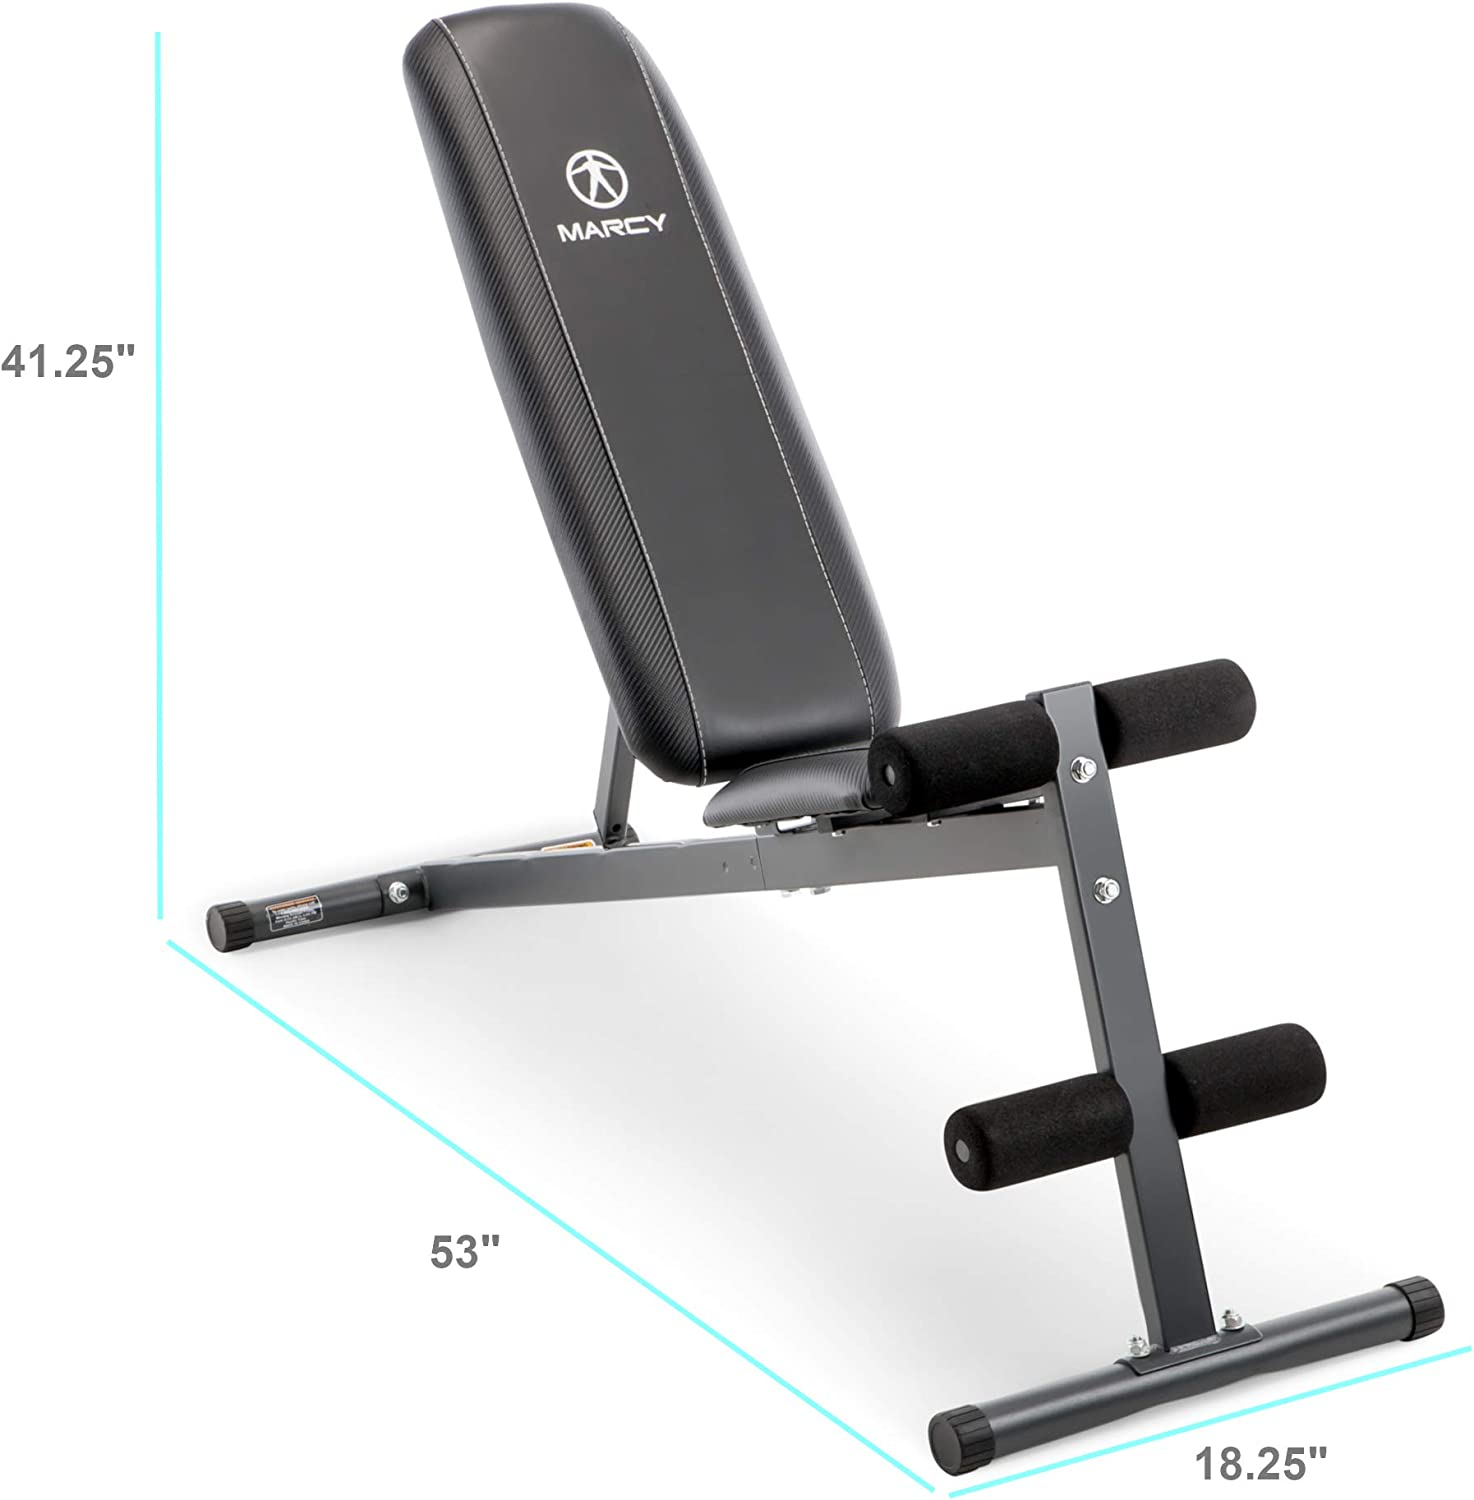 Marcy Exercise Utility Bench for Upright, Incline, Decline, and Flat Exercise SB-261W